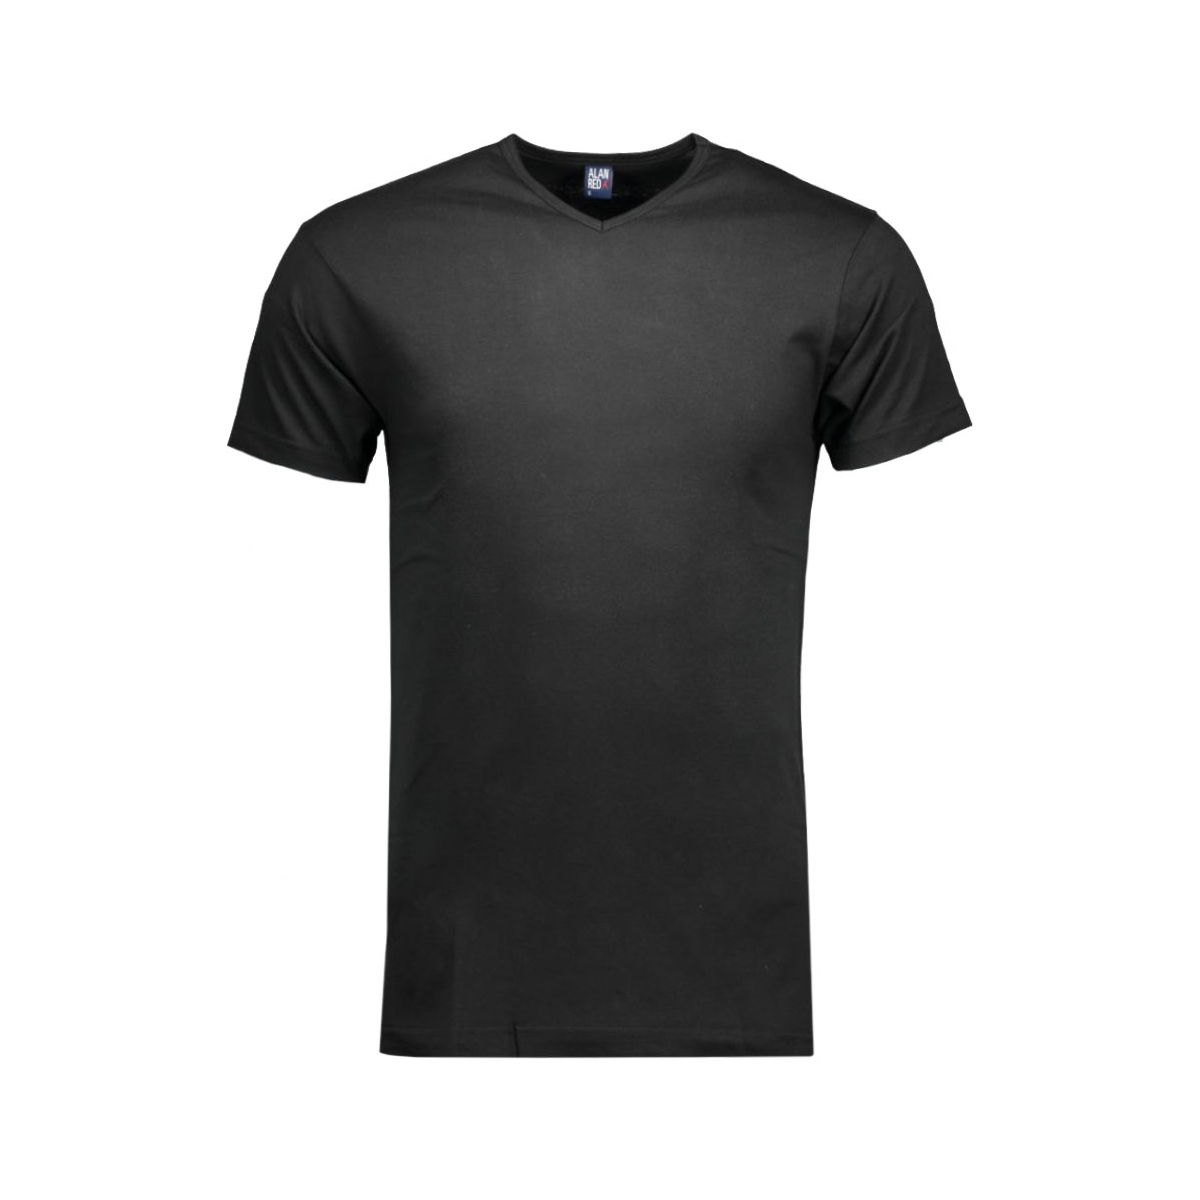 6671sp vermont alan red t-shirt black